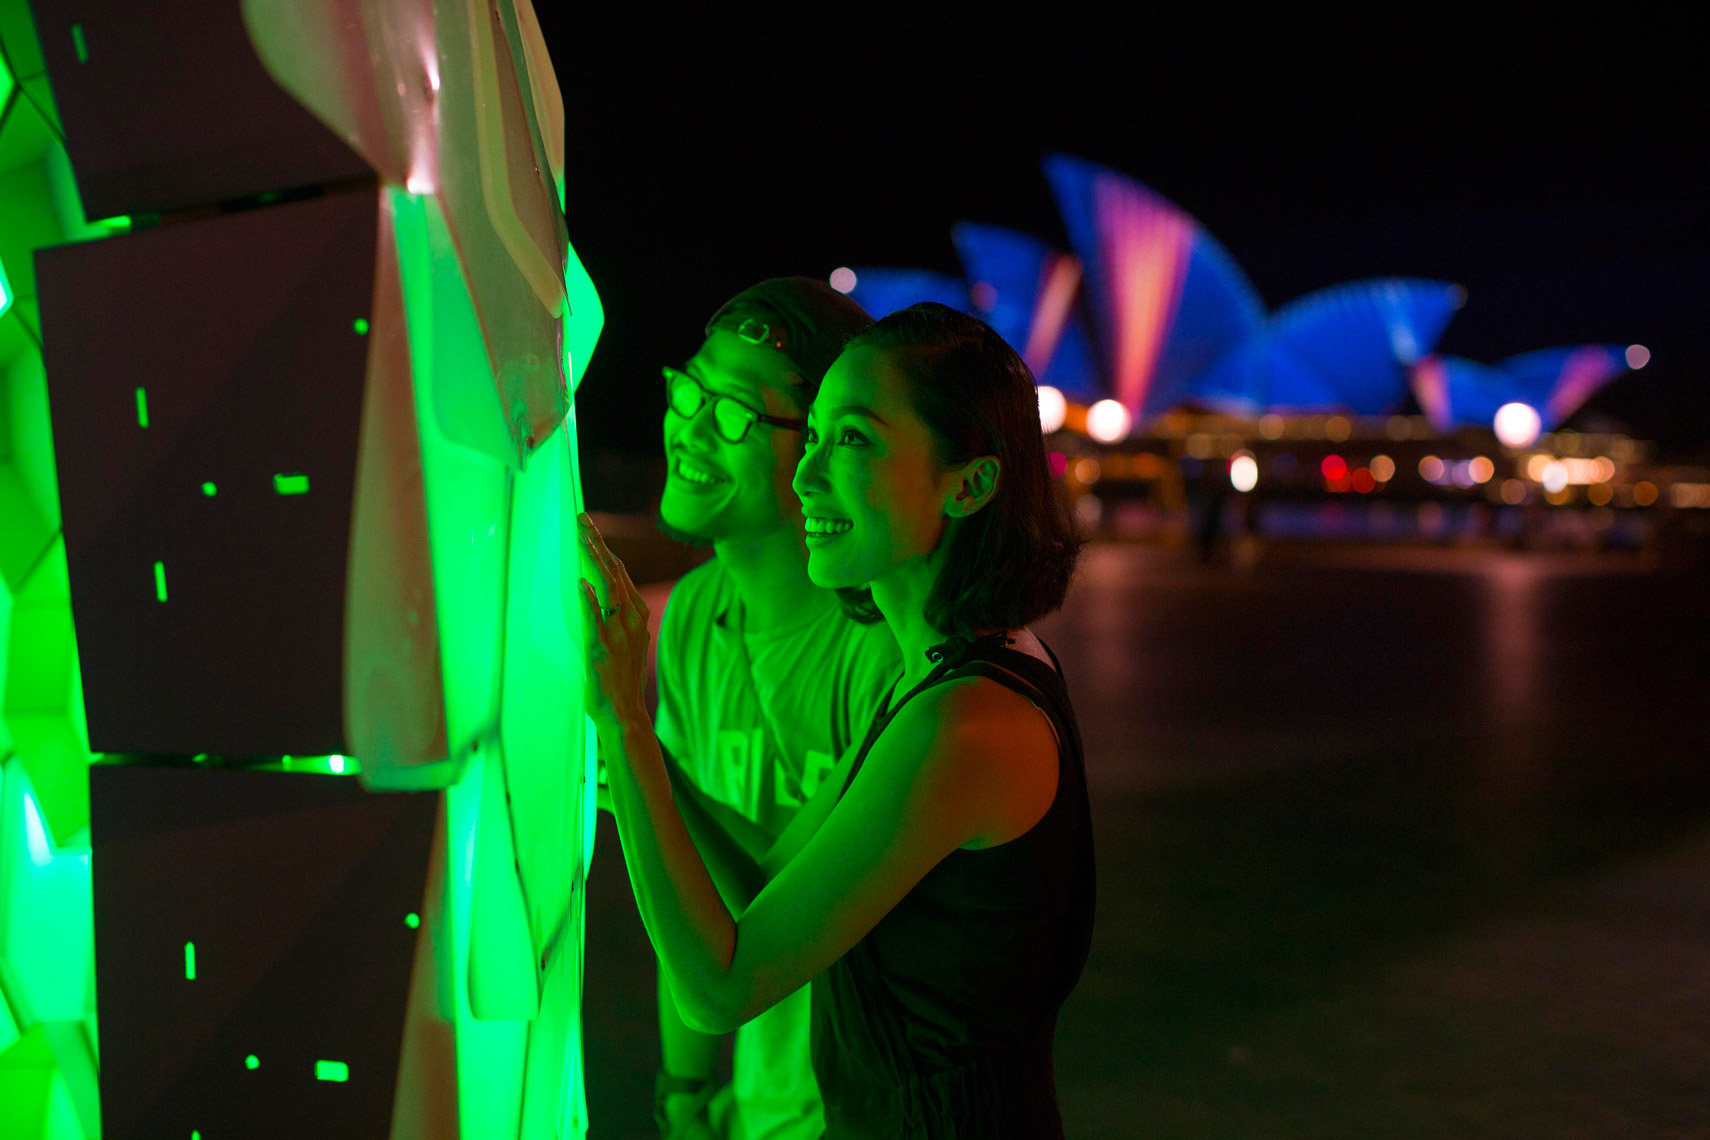 Vivid-Sydney-2014_Cellular-Tessellation_Campbells-Cove_James-Horan_DNSW_118